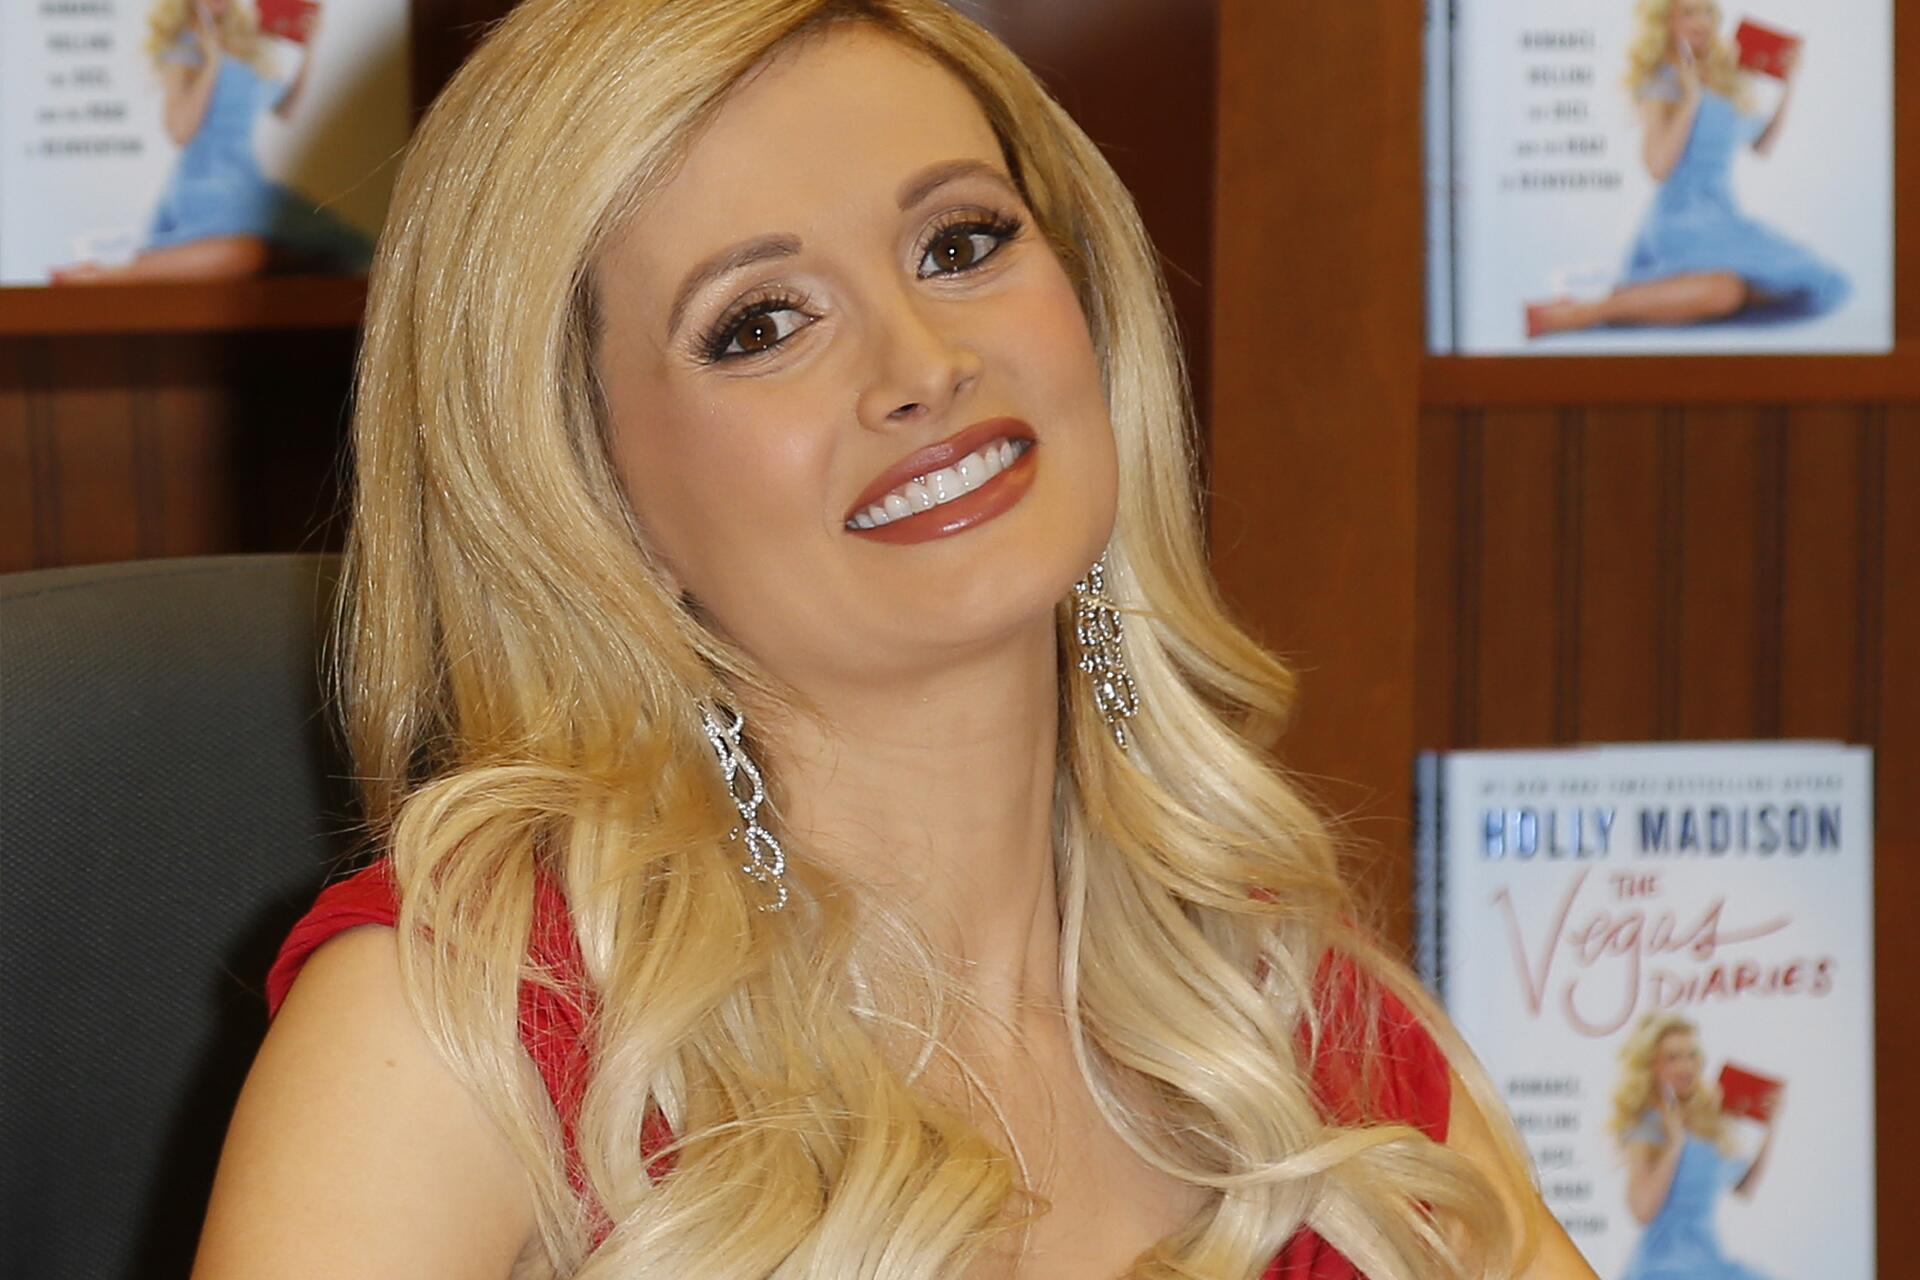 Bild zu Holly Madison, Sohn, Geburt, Intensivstation